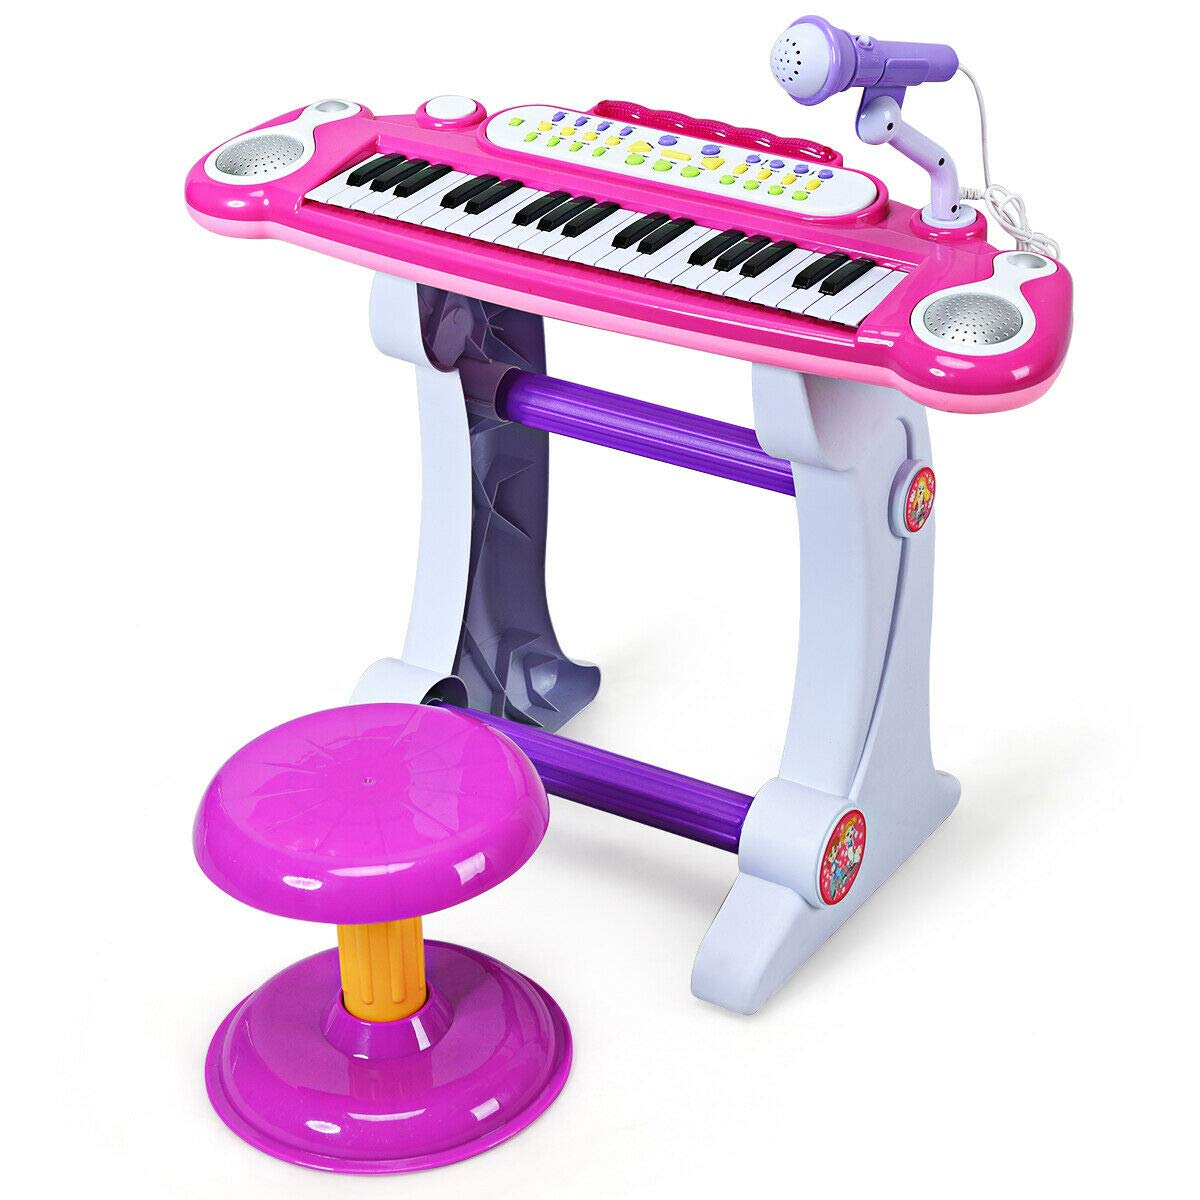 Costzon Electronic Keyboard 37-Key Piano, Musical Piano w/Record and Playback for Kids, Working Microphone & Stool, Pink by Costzon